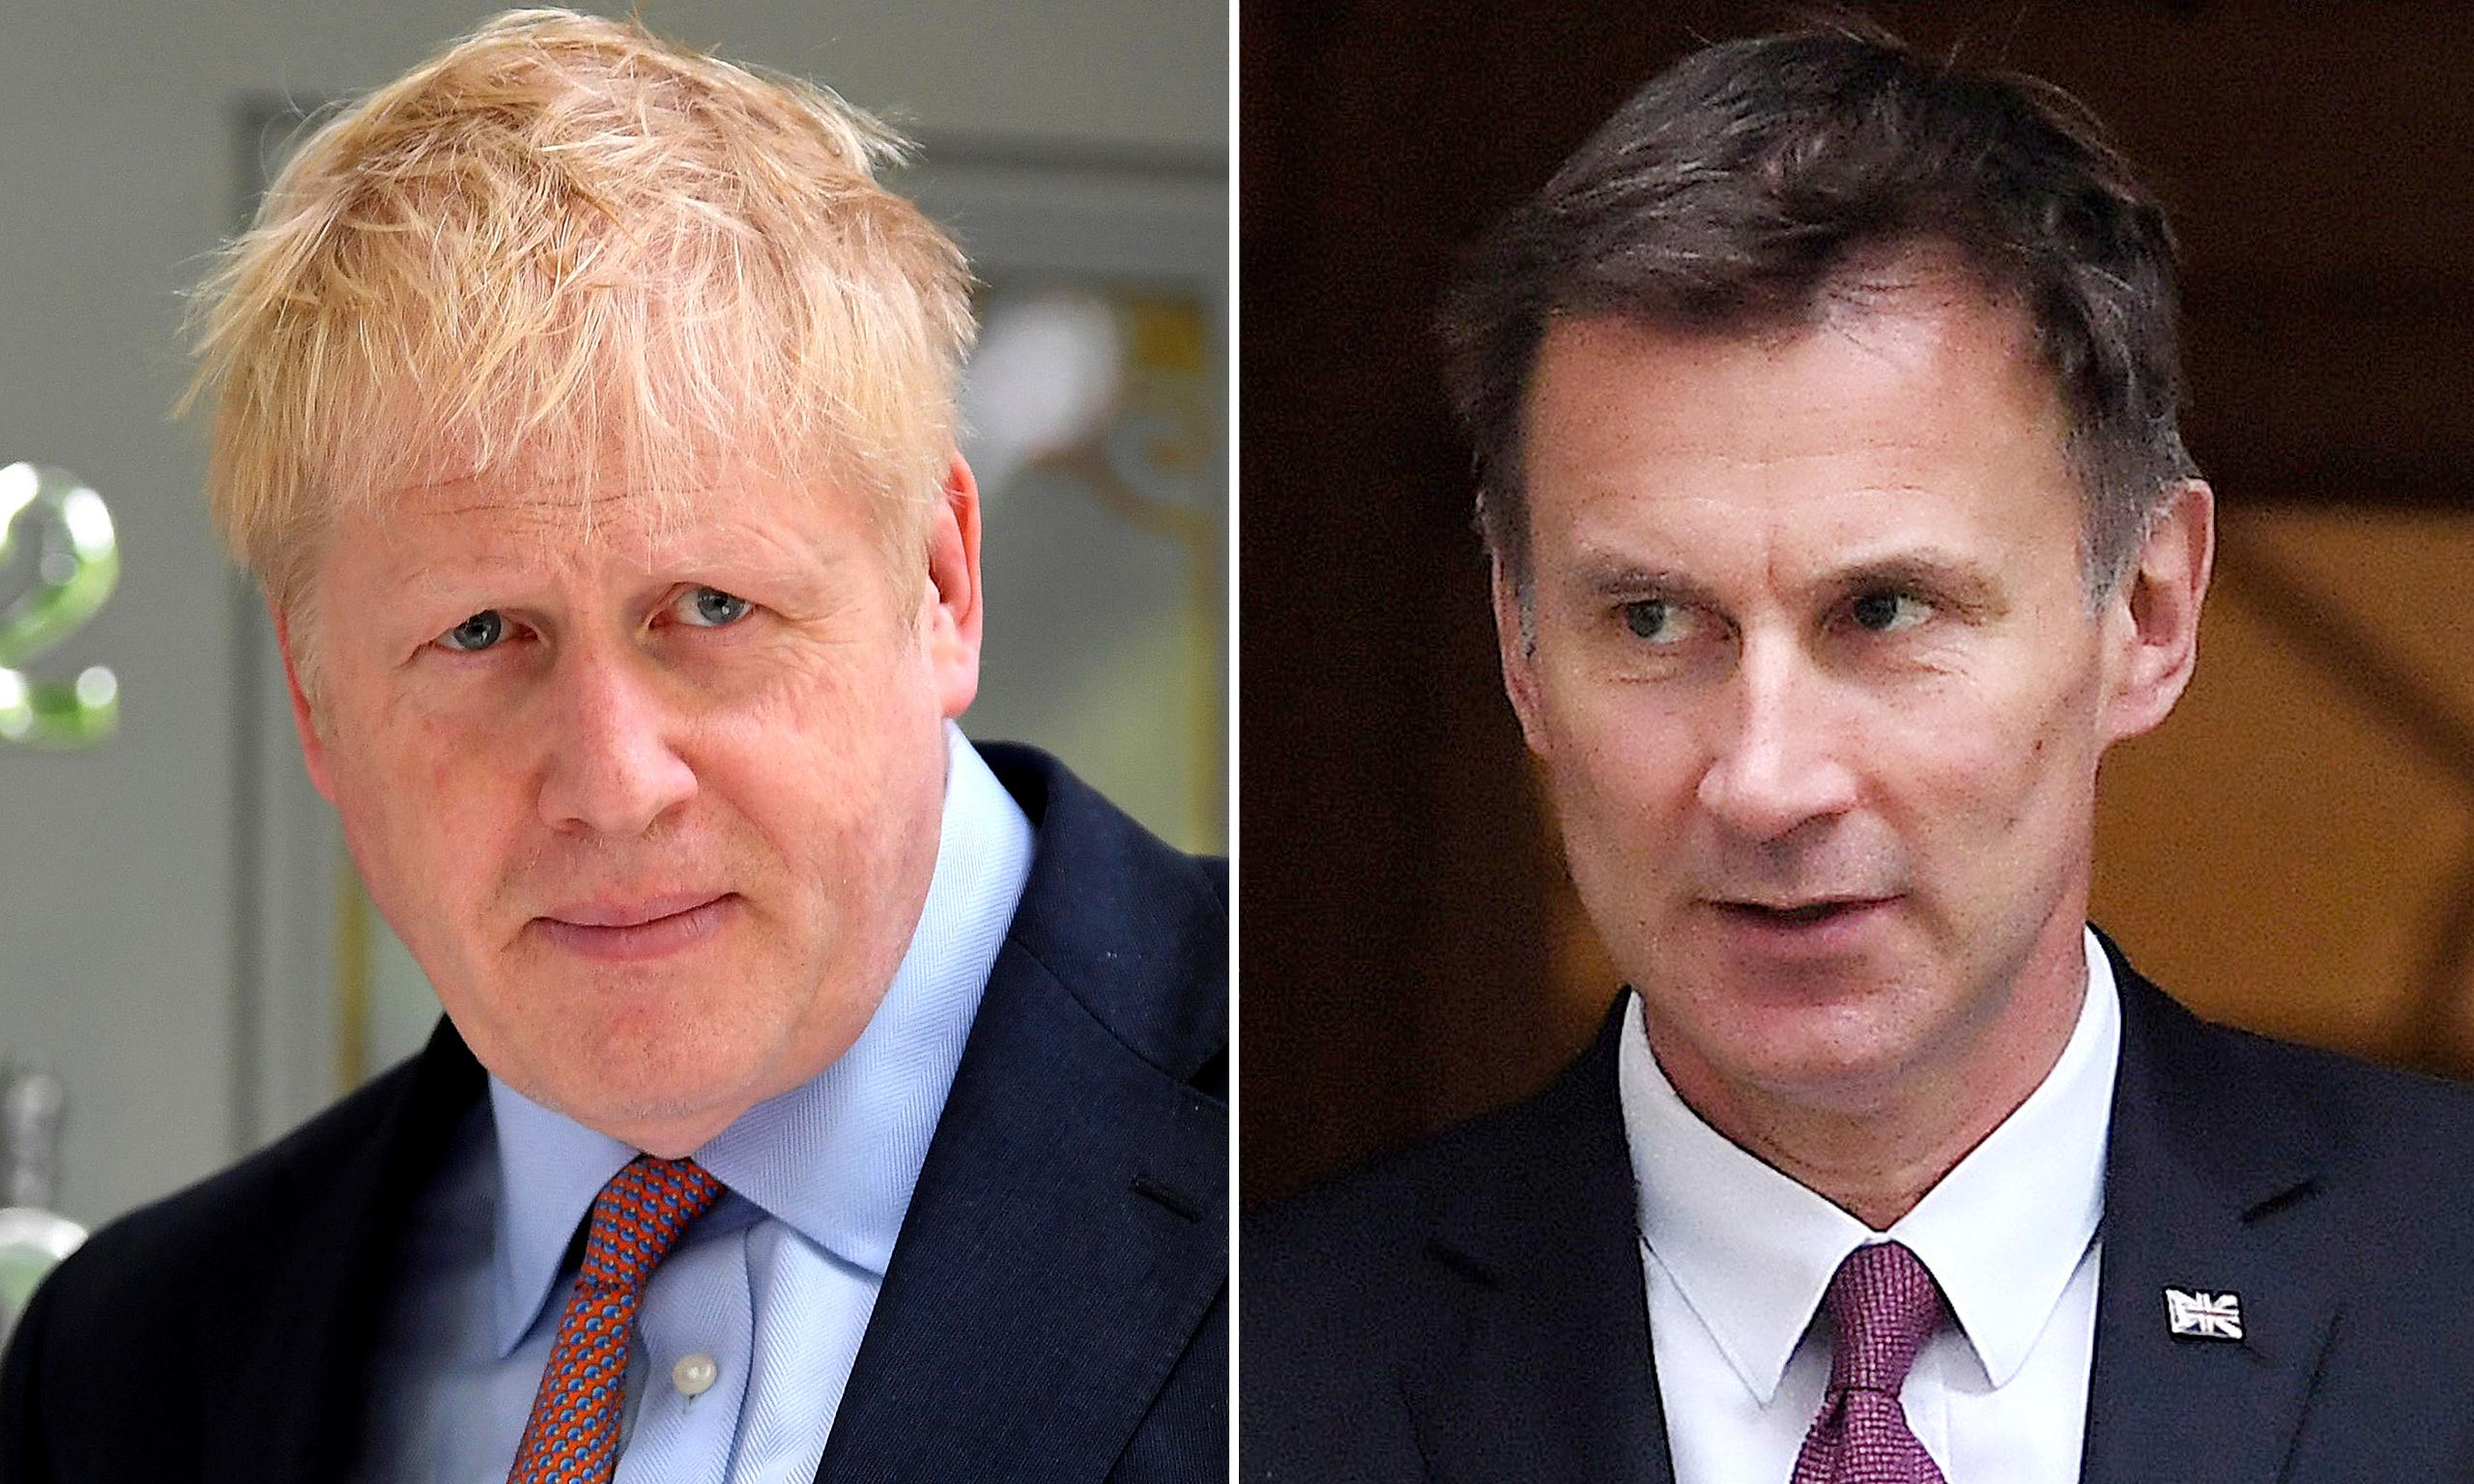 Johnson v Hunt: their policies, personal style and pasts compared